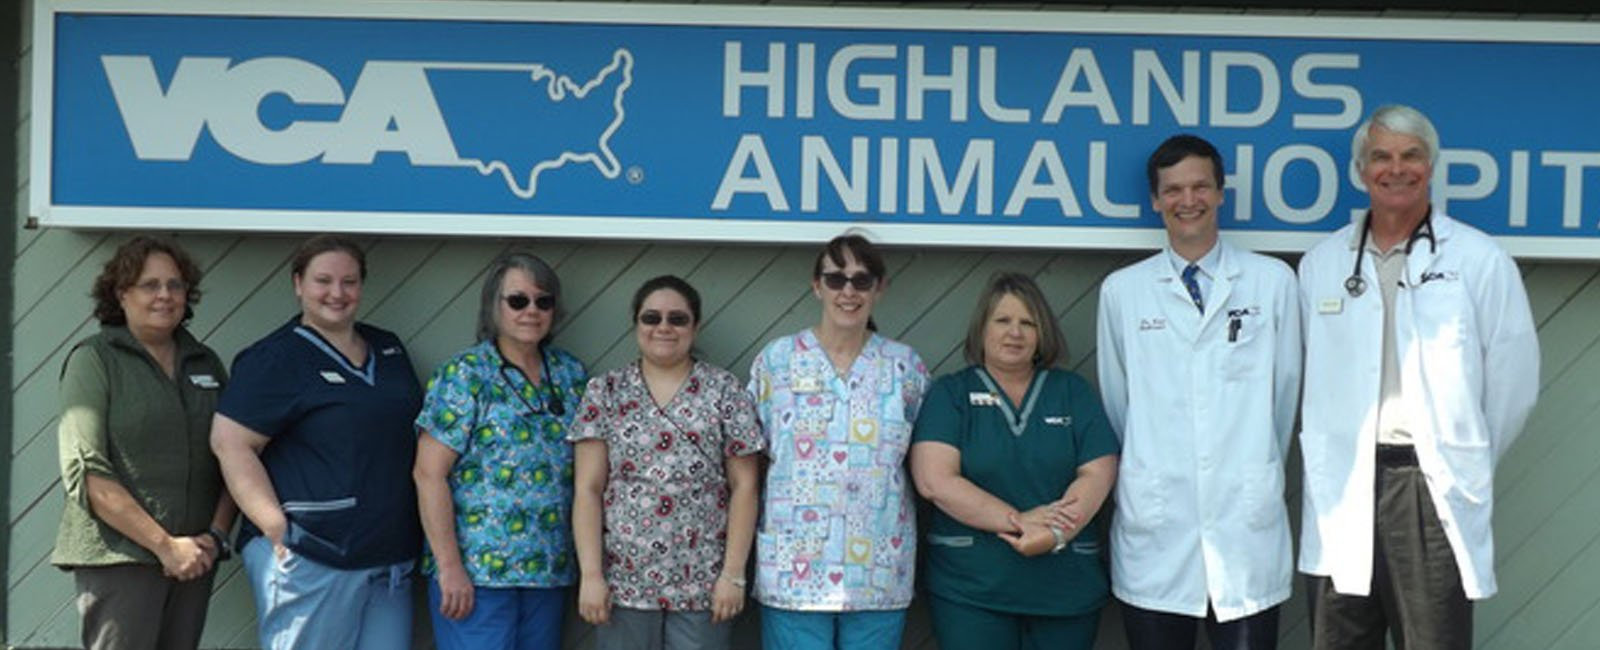 Homepage Team Picture of VCA Highlands Animal Hospital